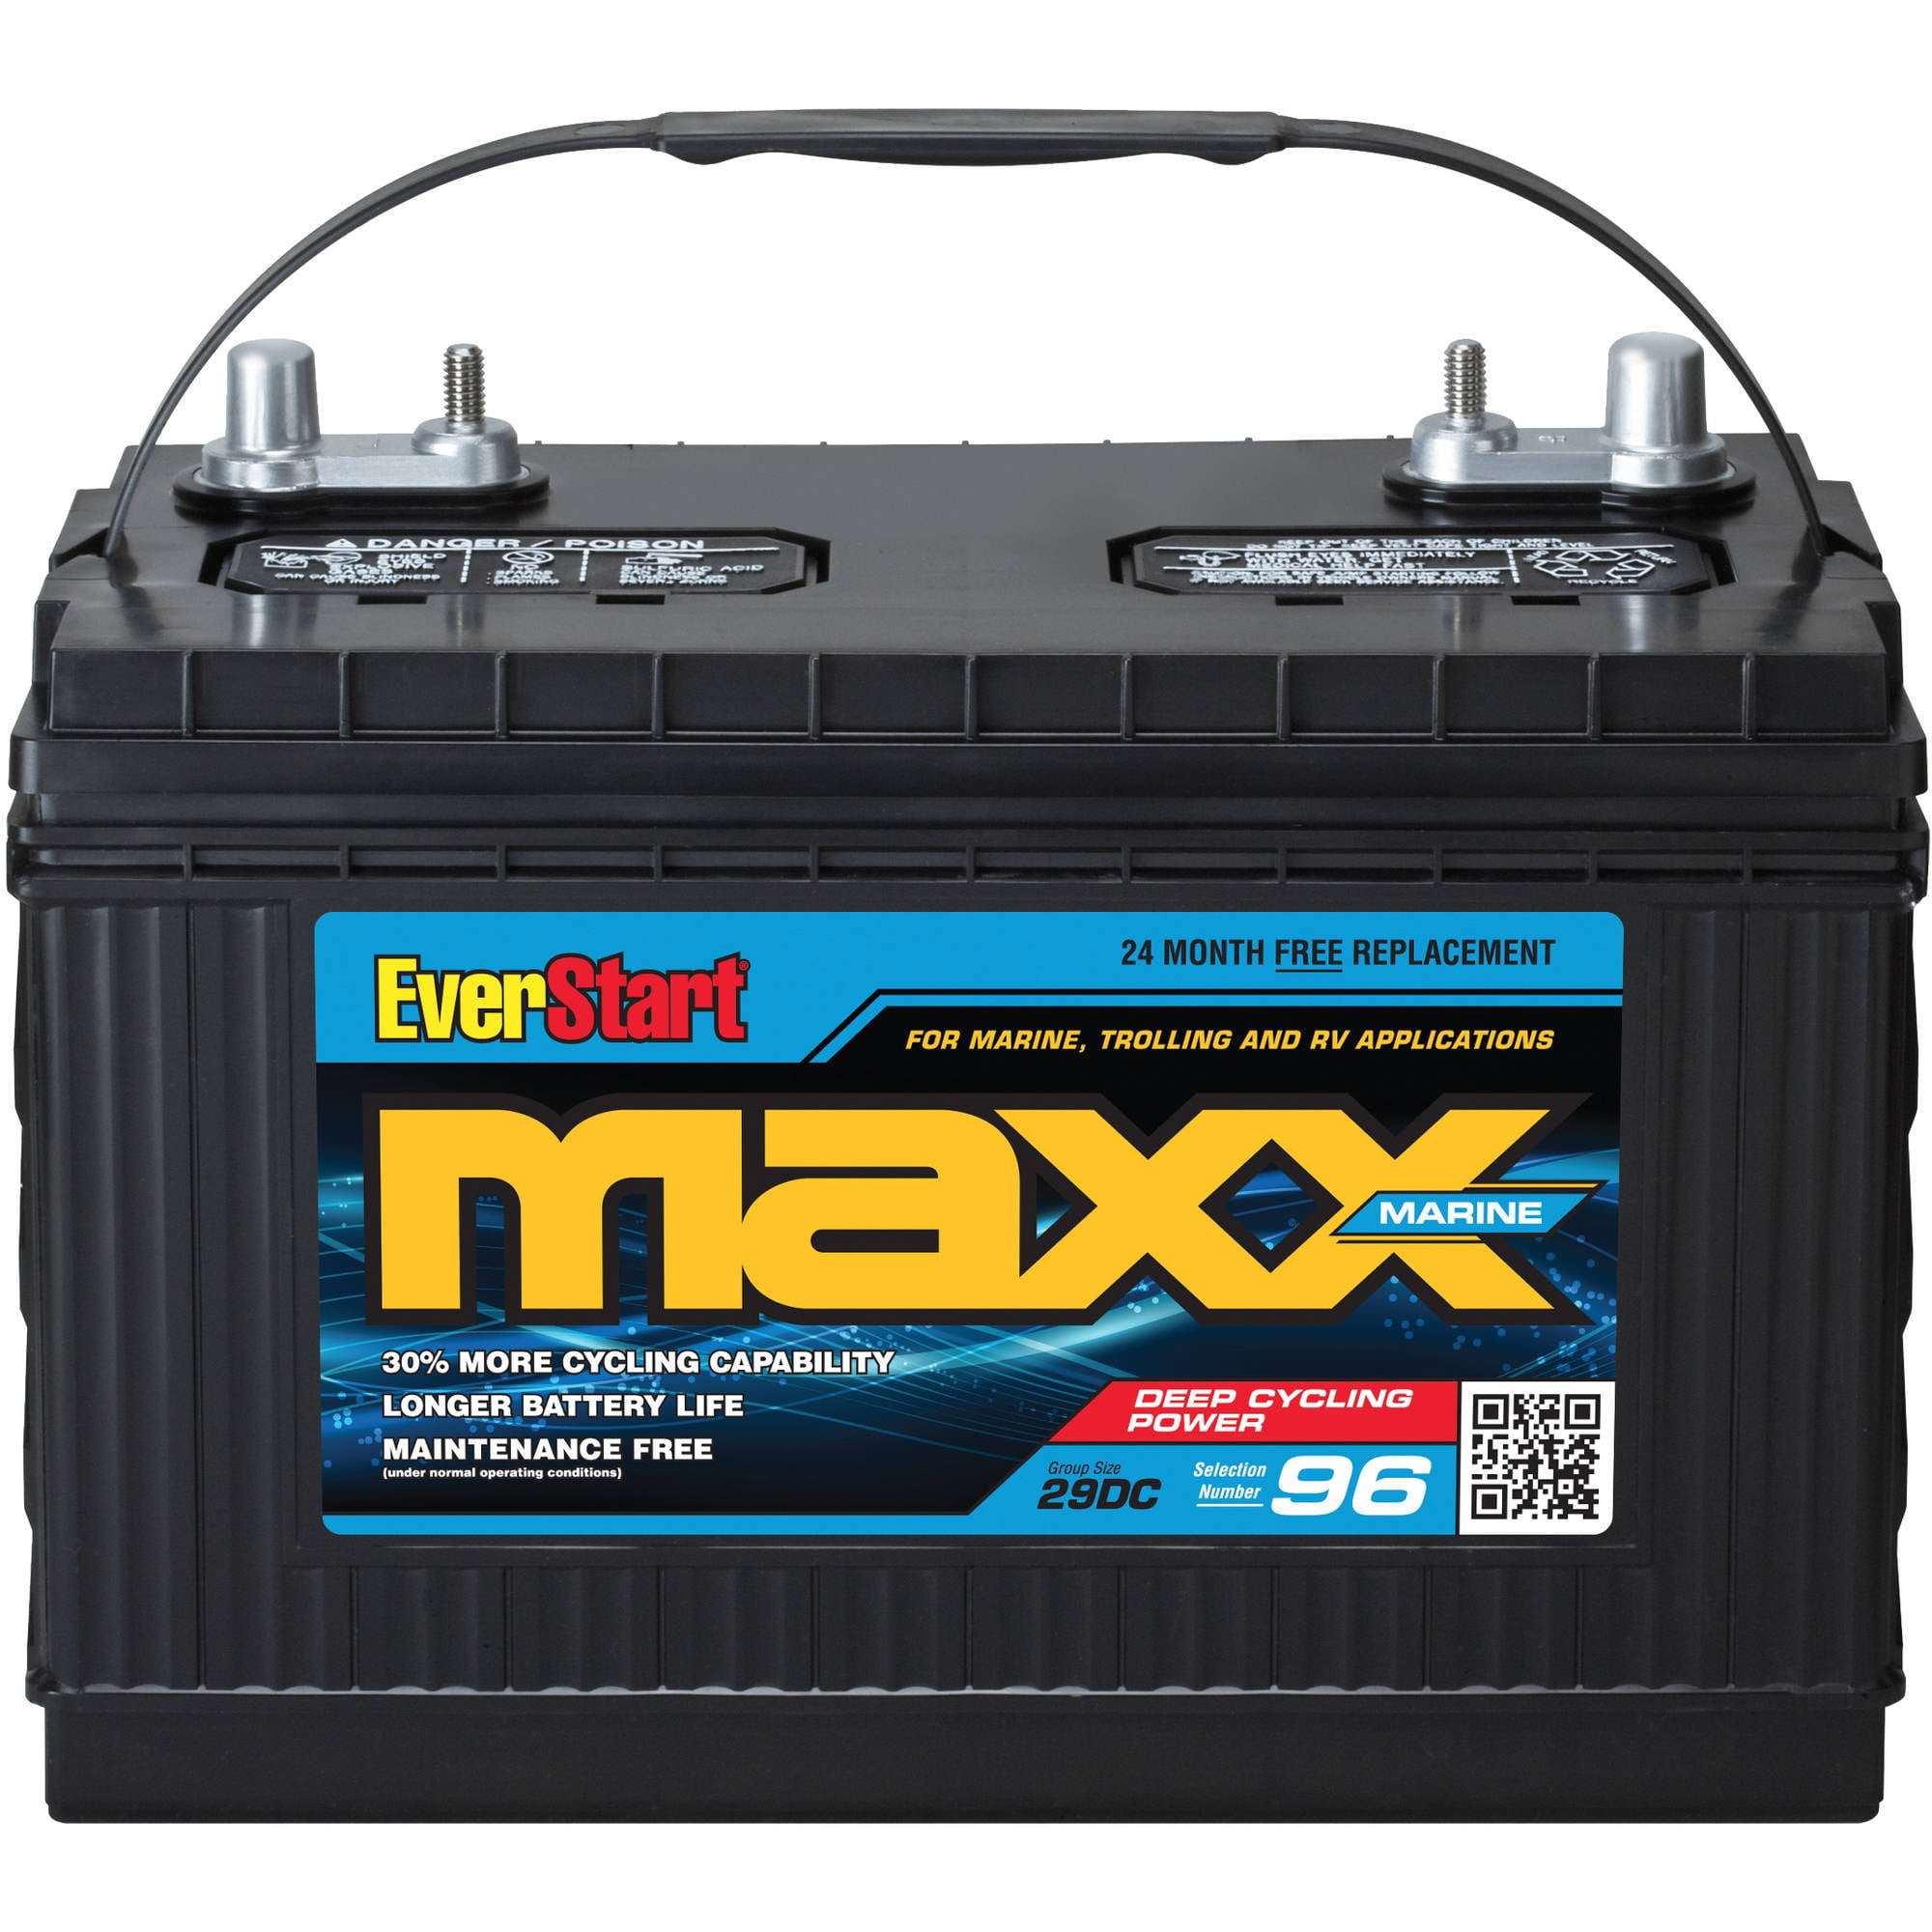 Everstart Maxx Lead Acid Marine Battery Group 29dc Walmart Com